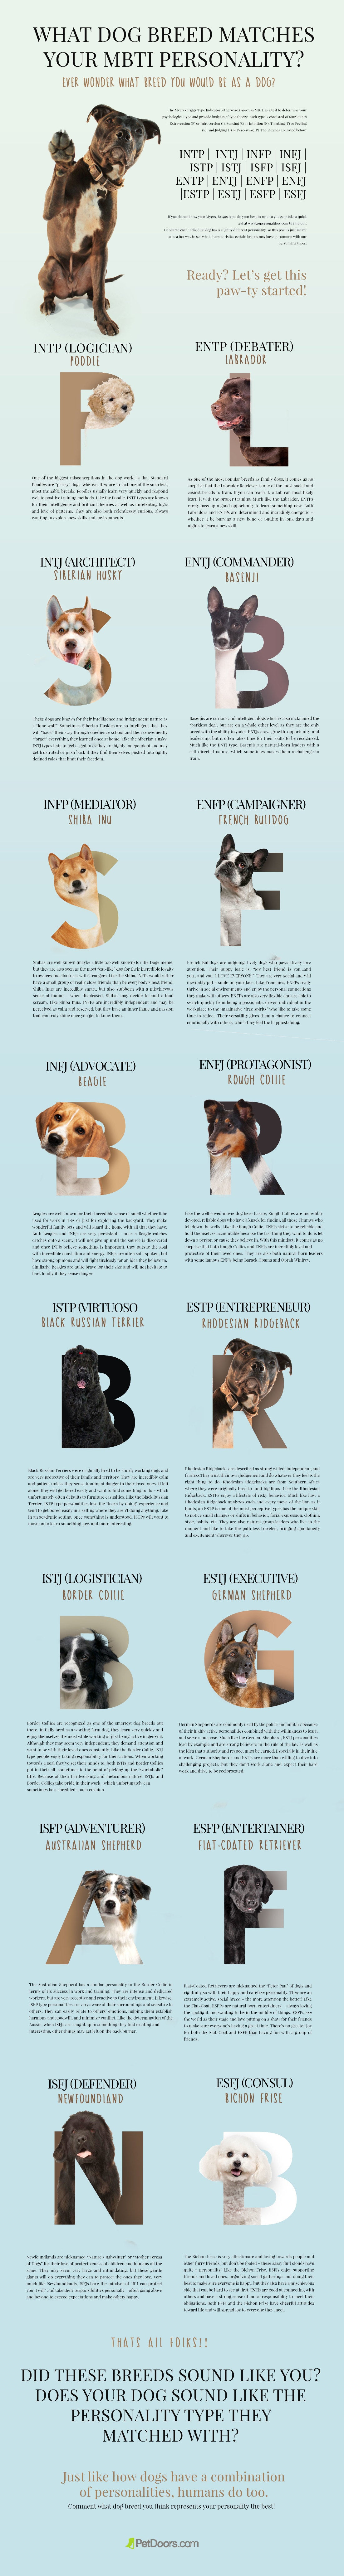 mbti dog personality infographic - how to choose the right dog for you